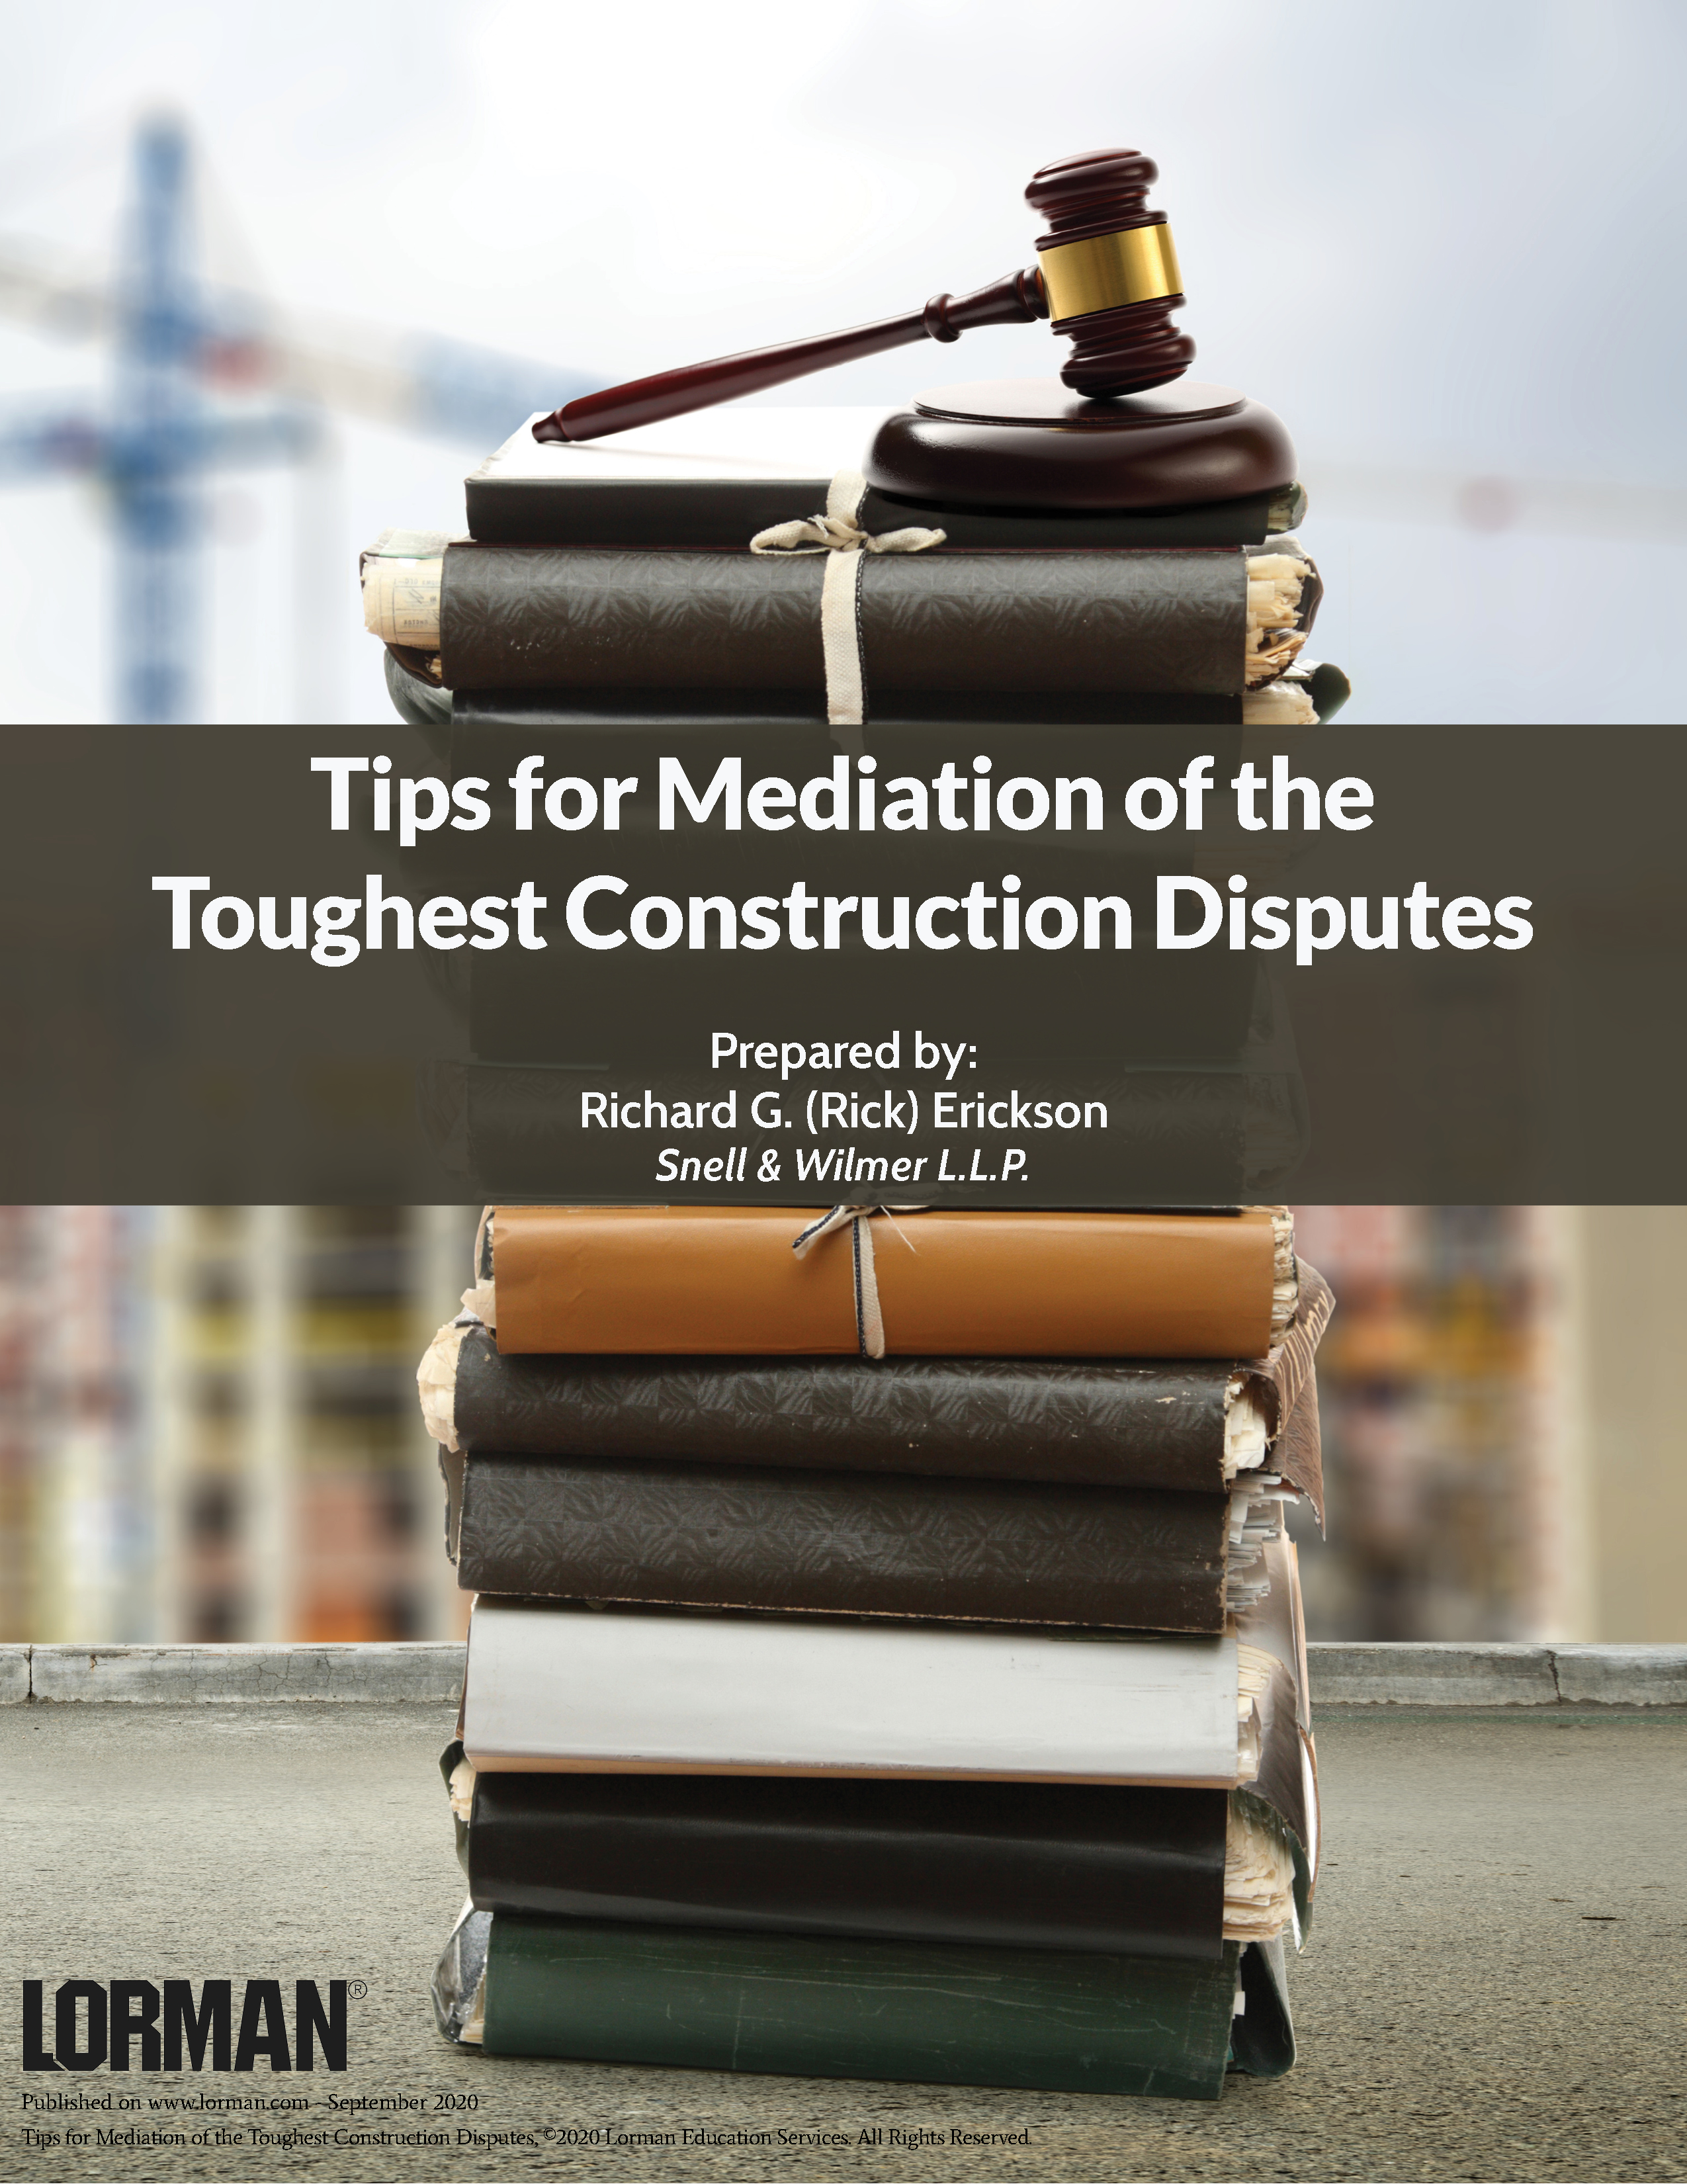 Tips for Mediation of the Toughest Construction Disputes